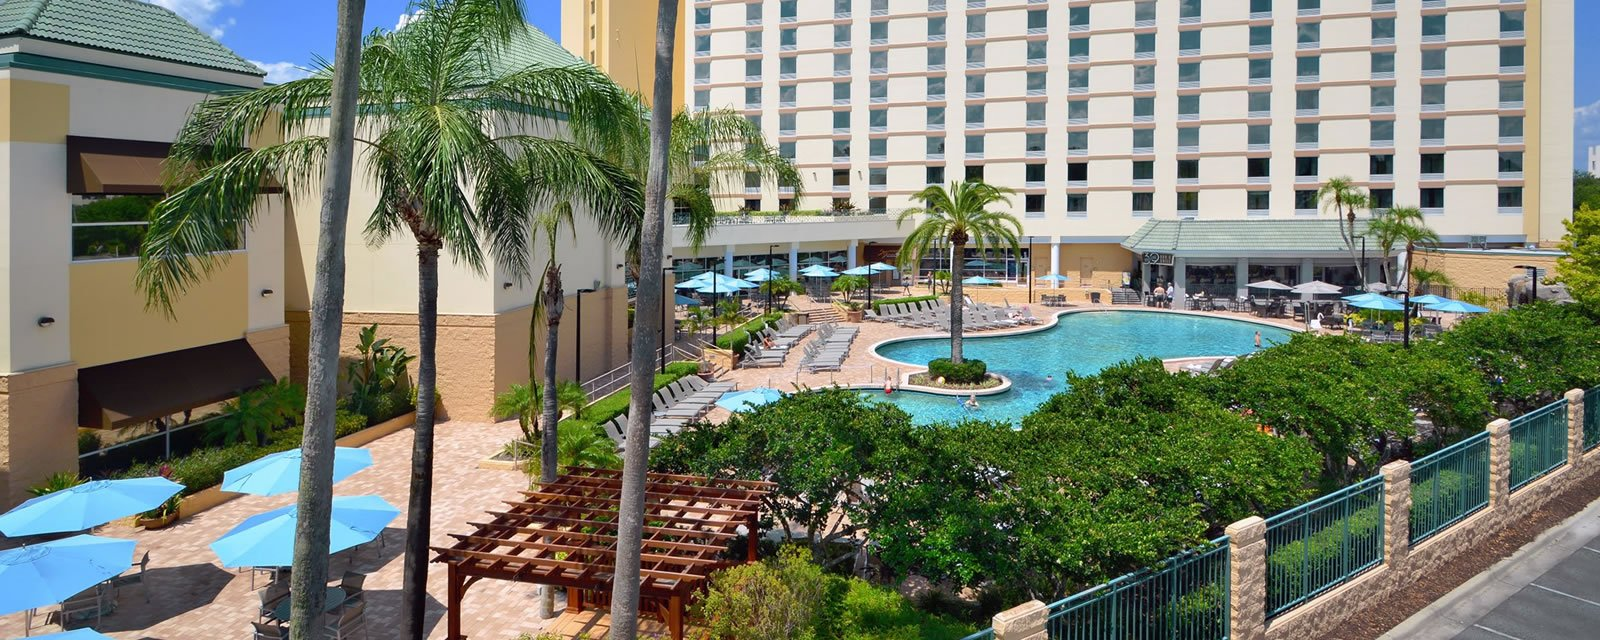 Pool with Rosen Plaza® Building Behind